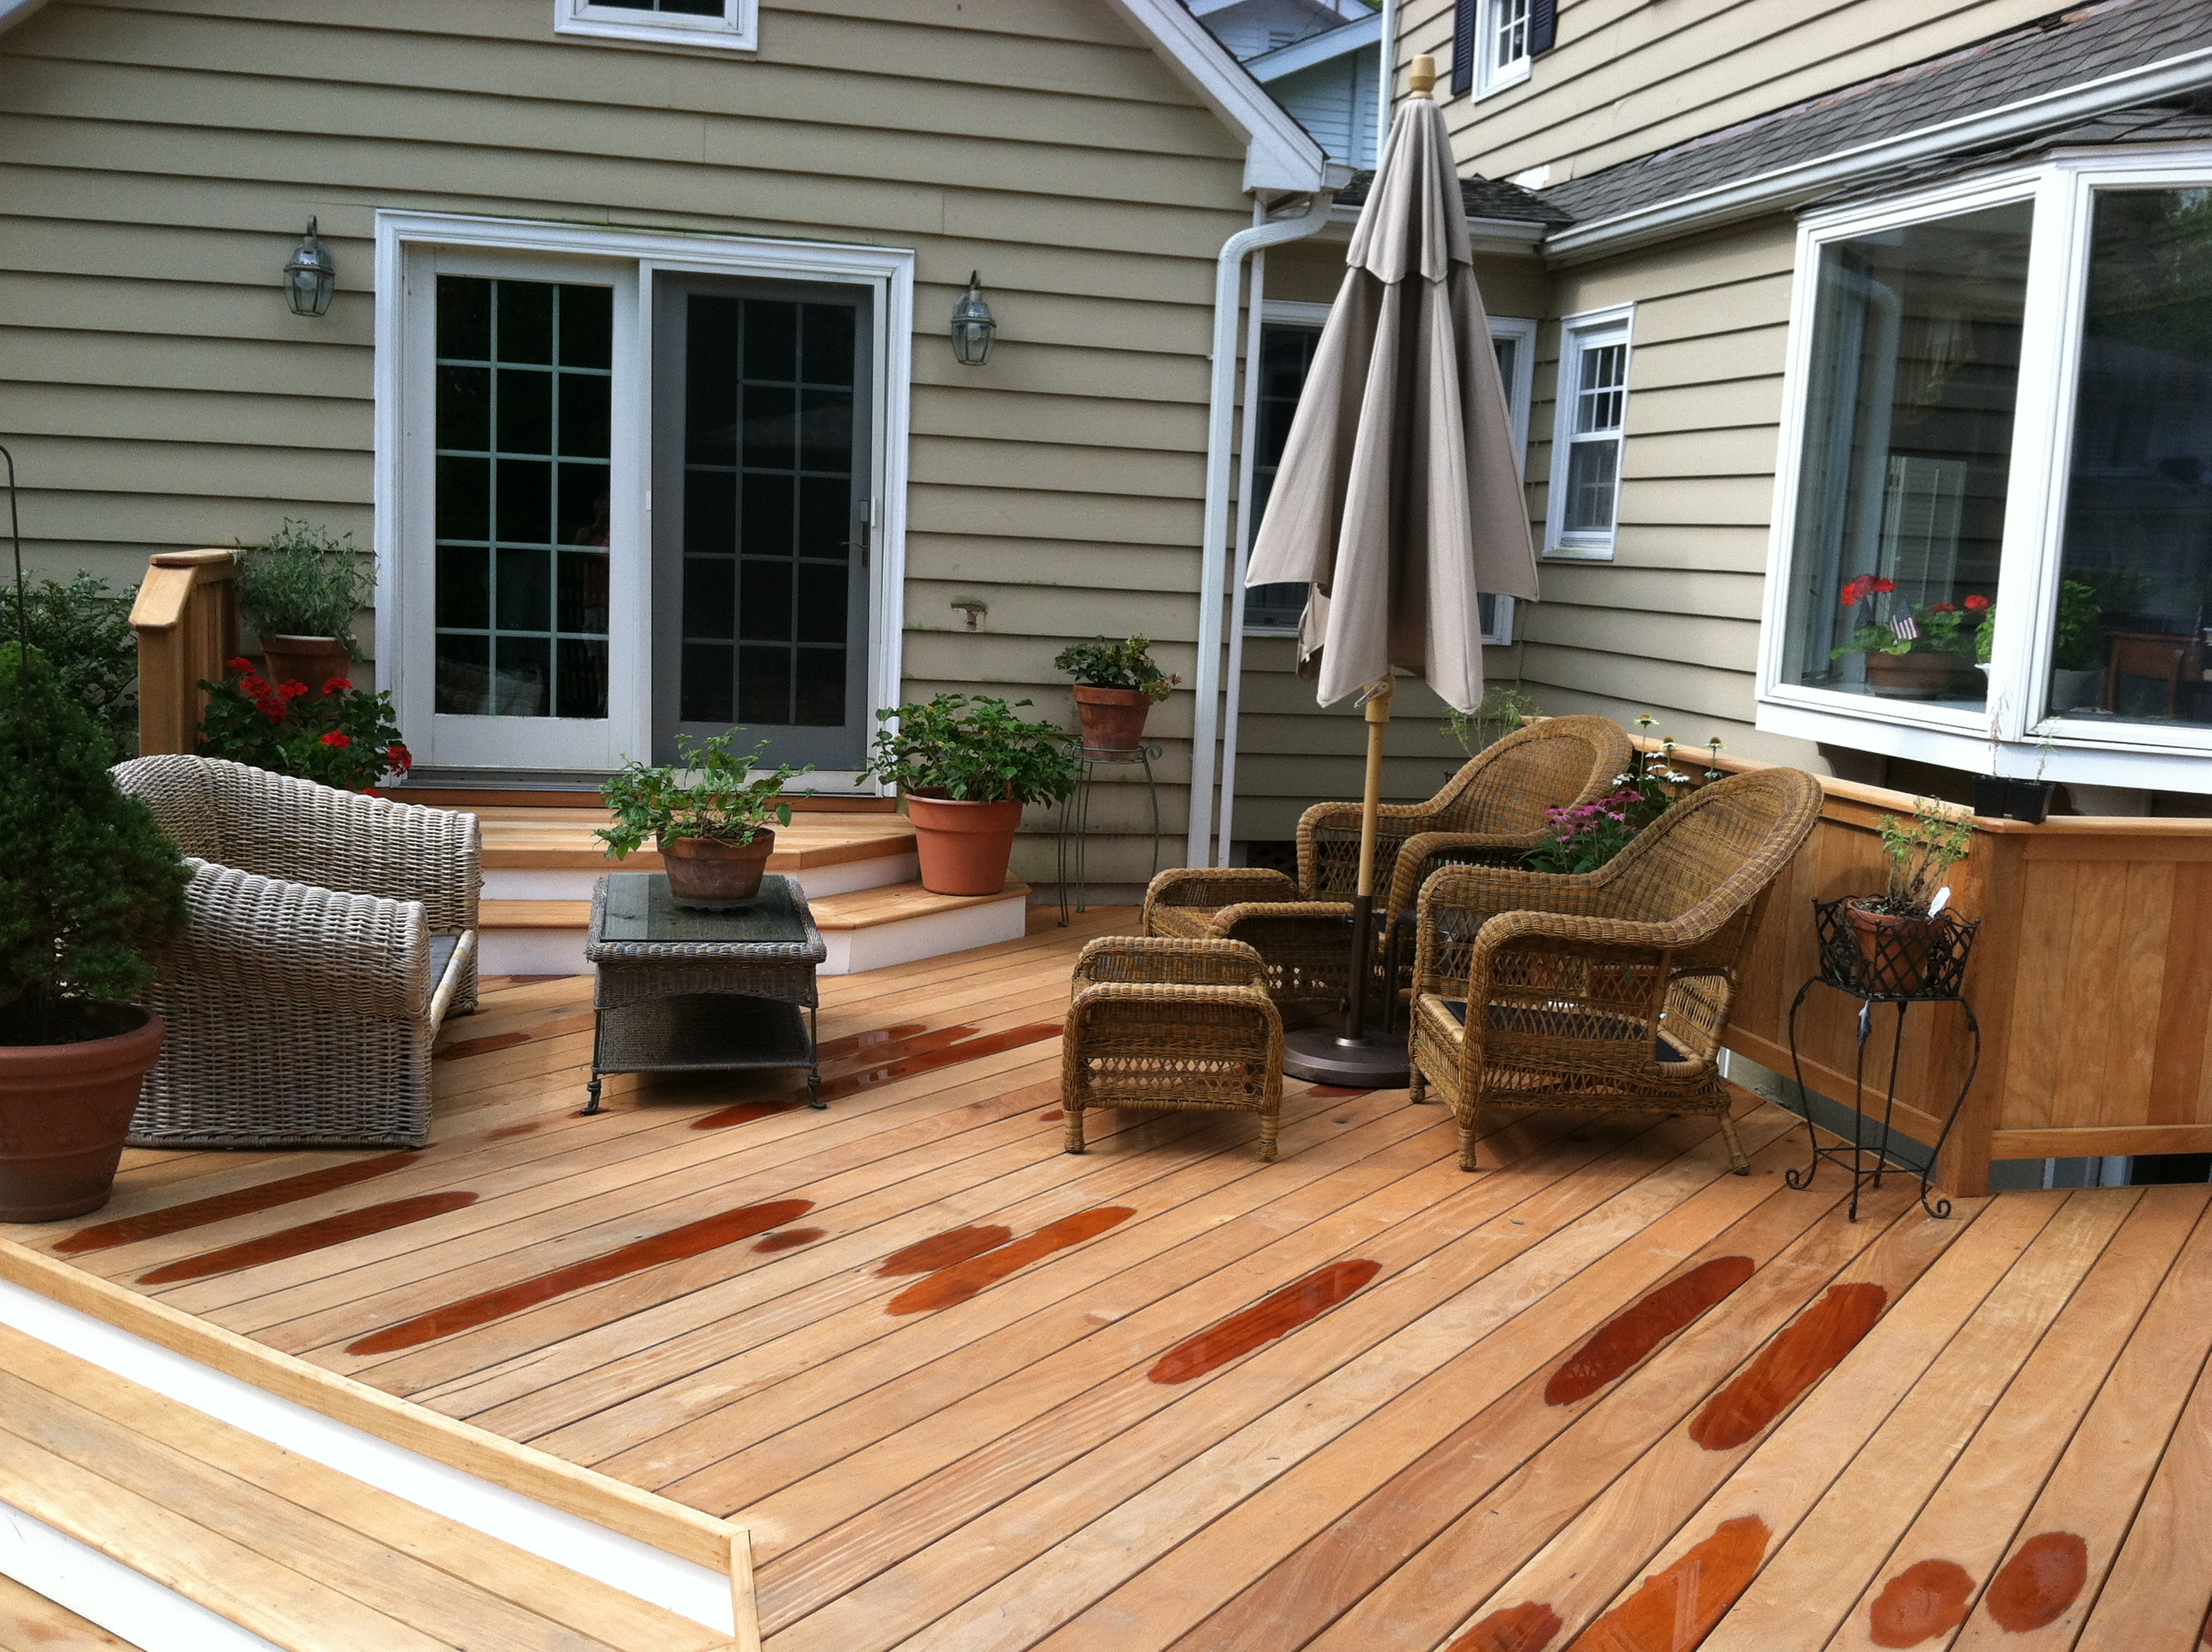 Wood Decks Archadeck Custom Decks Patios Sunrooms And Porch Builder